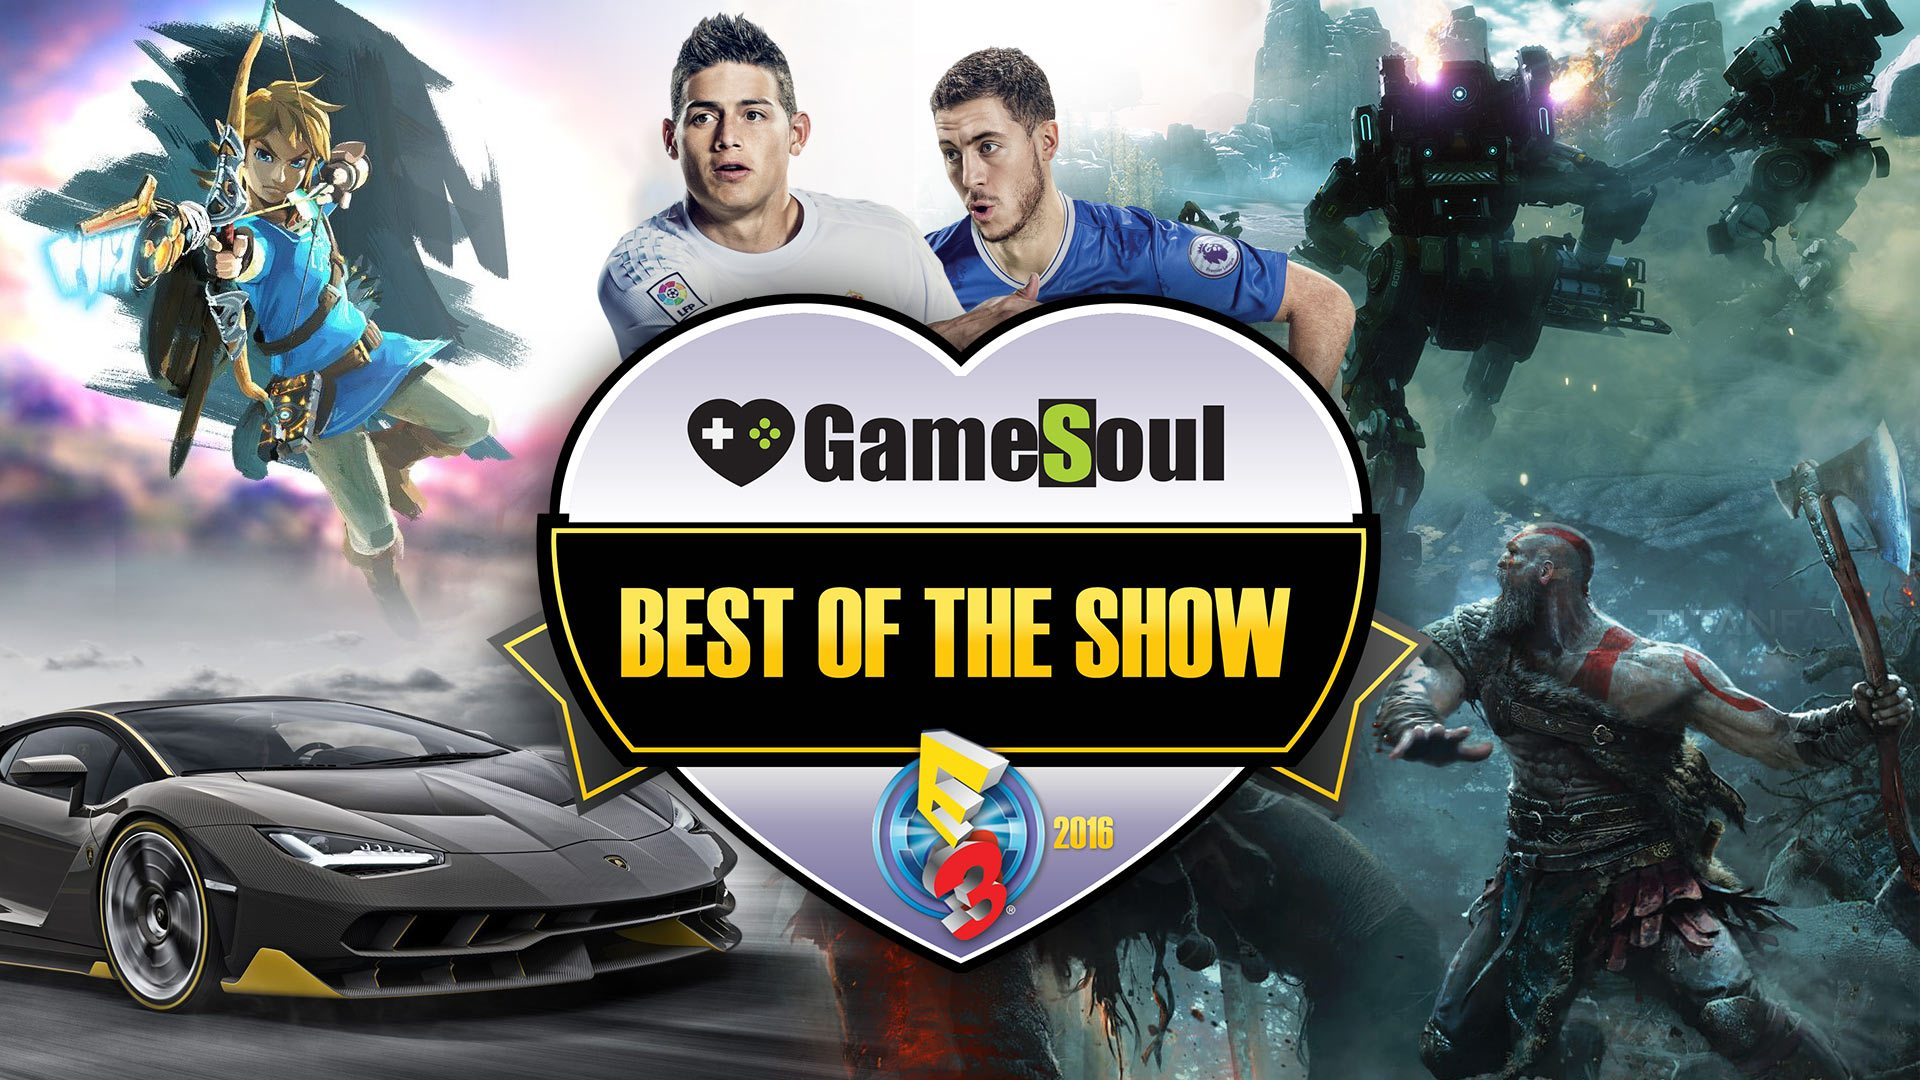 Best of E3 2016 - GameSoul